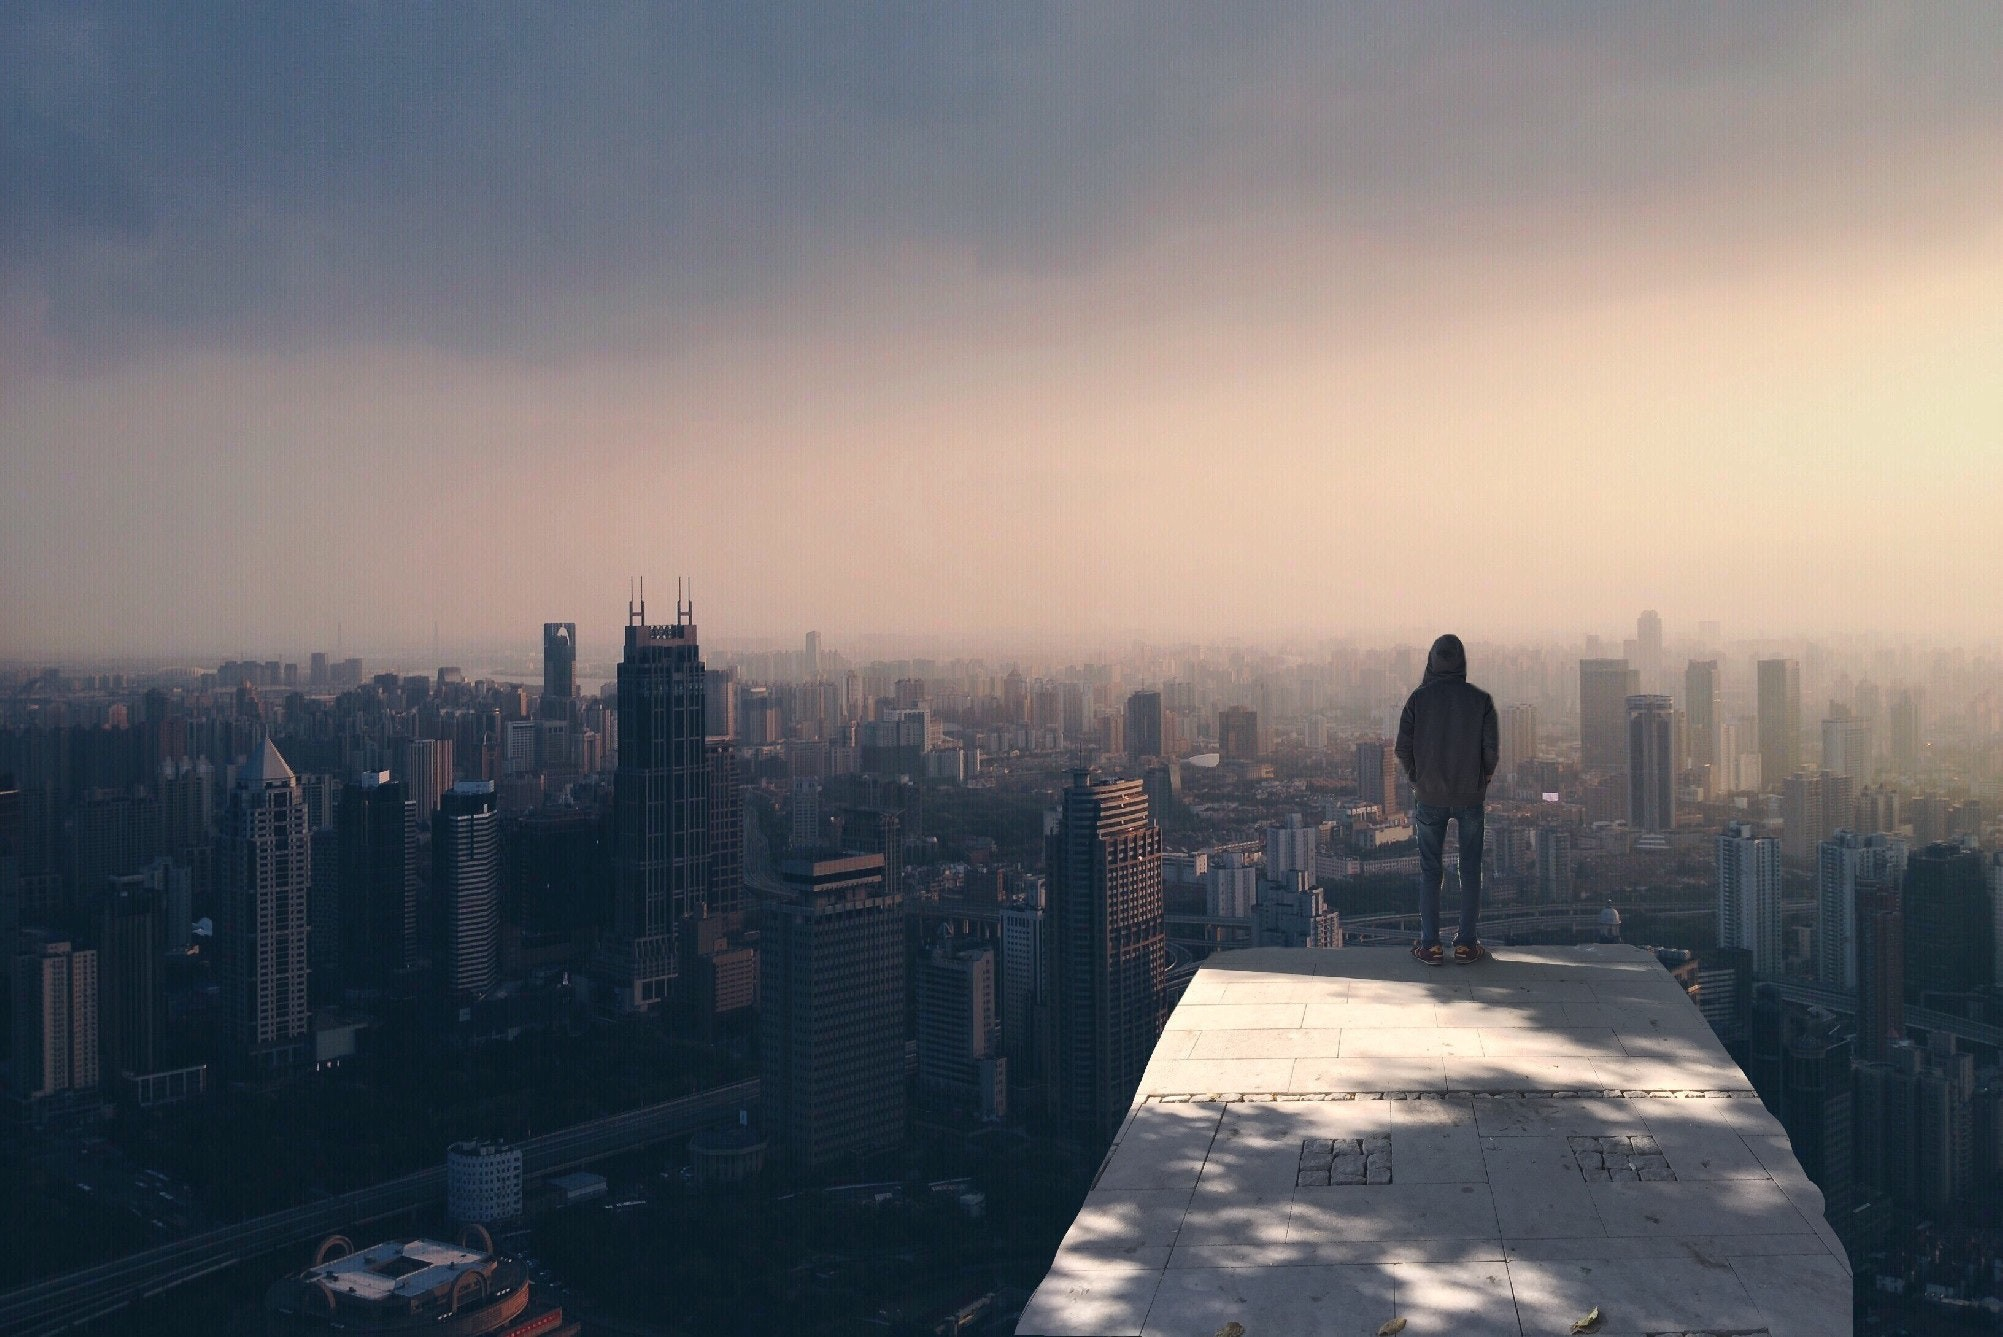 Person standing on top of a building in the city